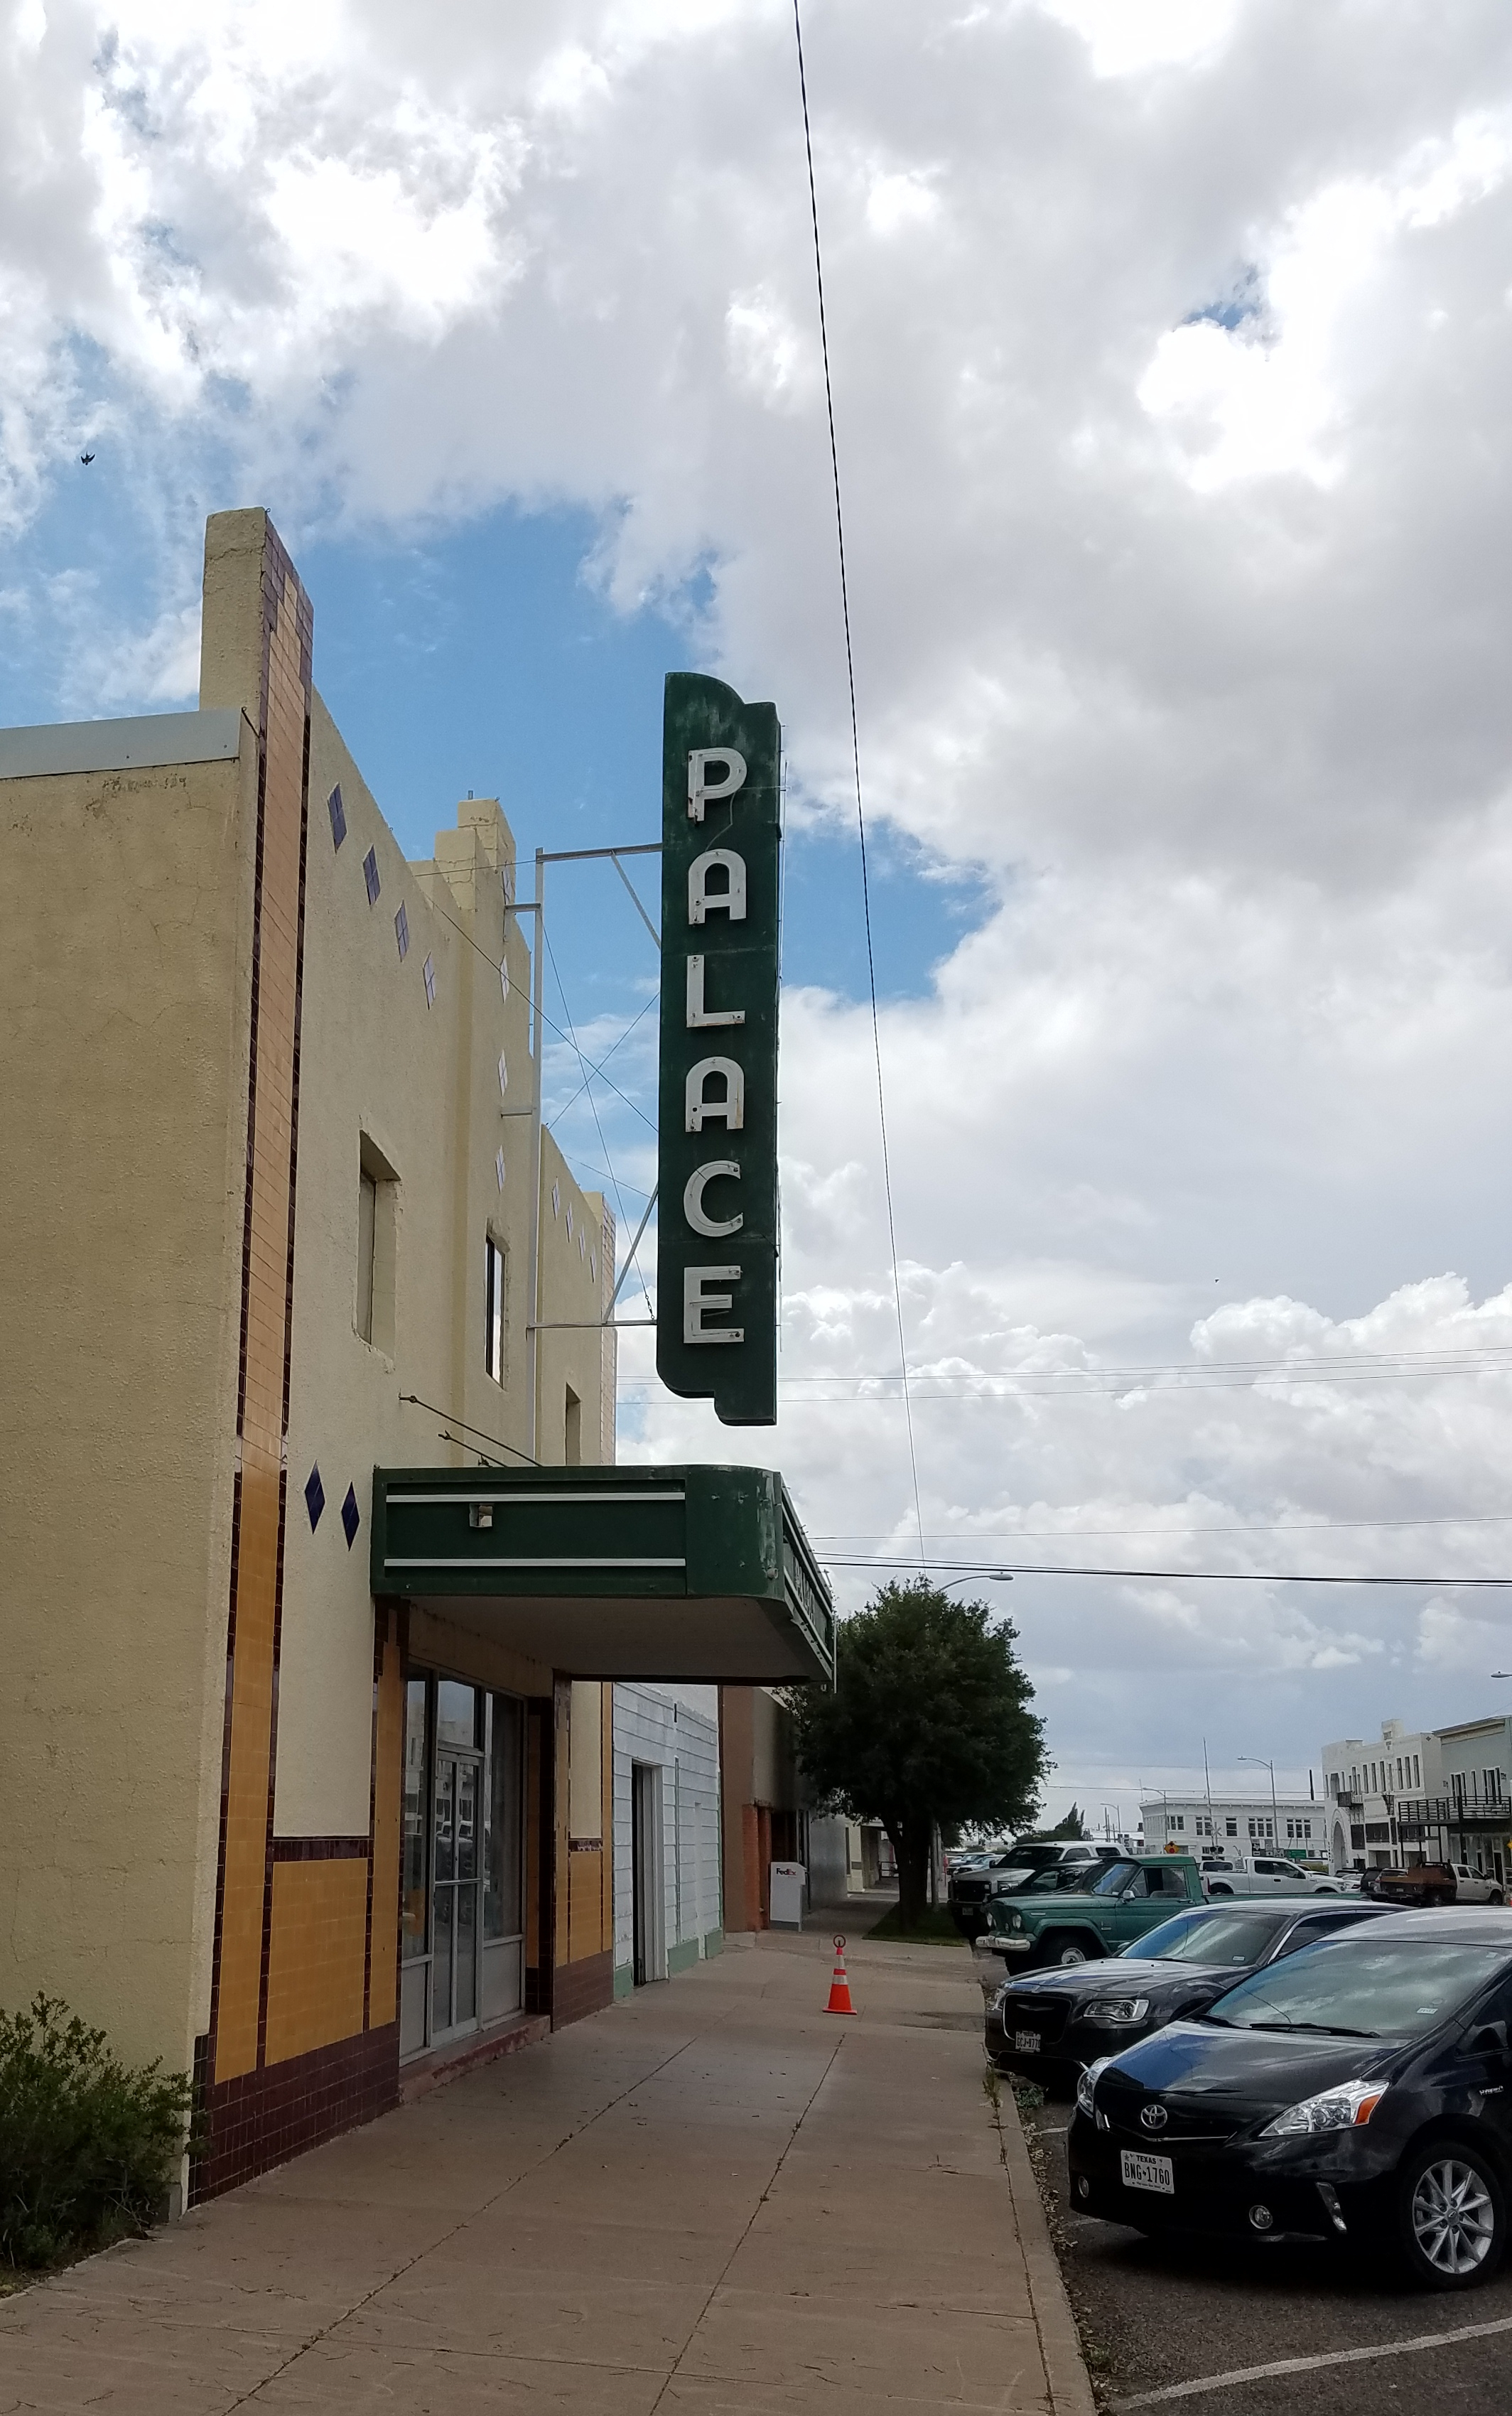 The Palace Theater, standing empty on Marfa's main drag.